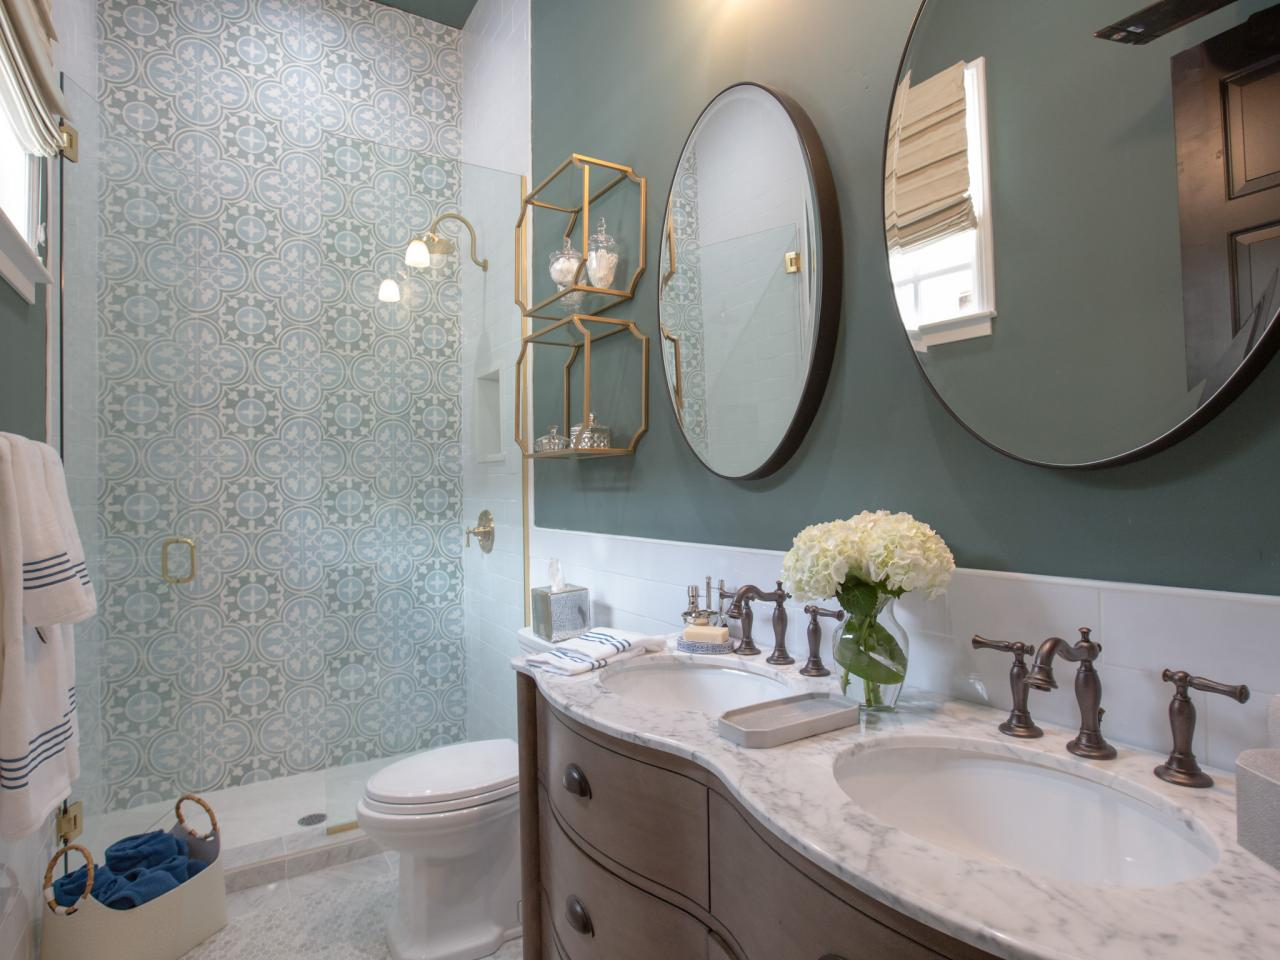 Bathroom Cabinets New Orleans gift ideas that benefit new orleans' nonprofits | hgtv's